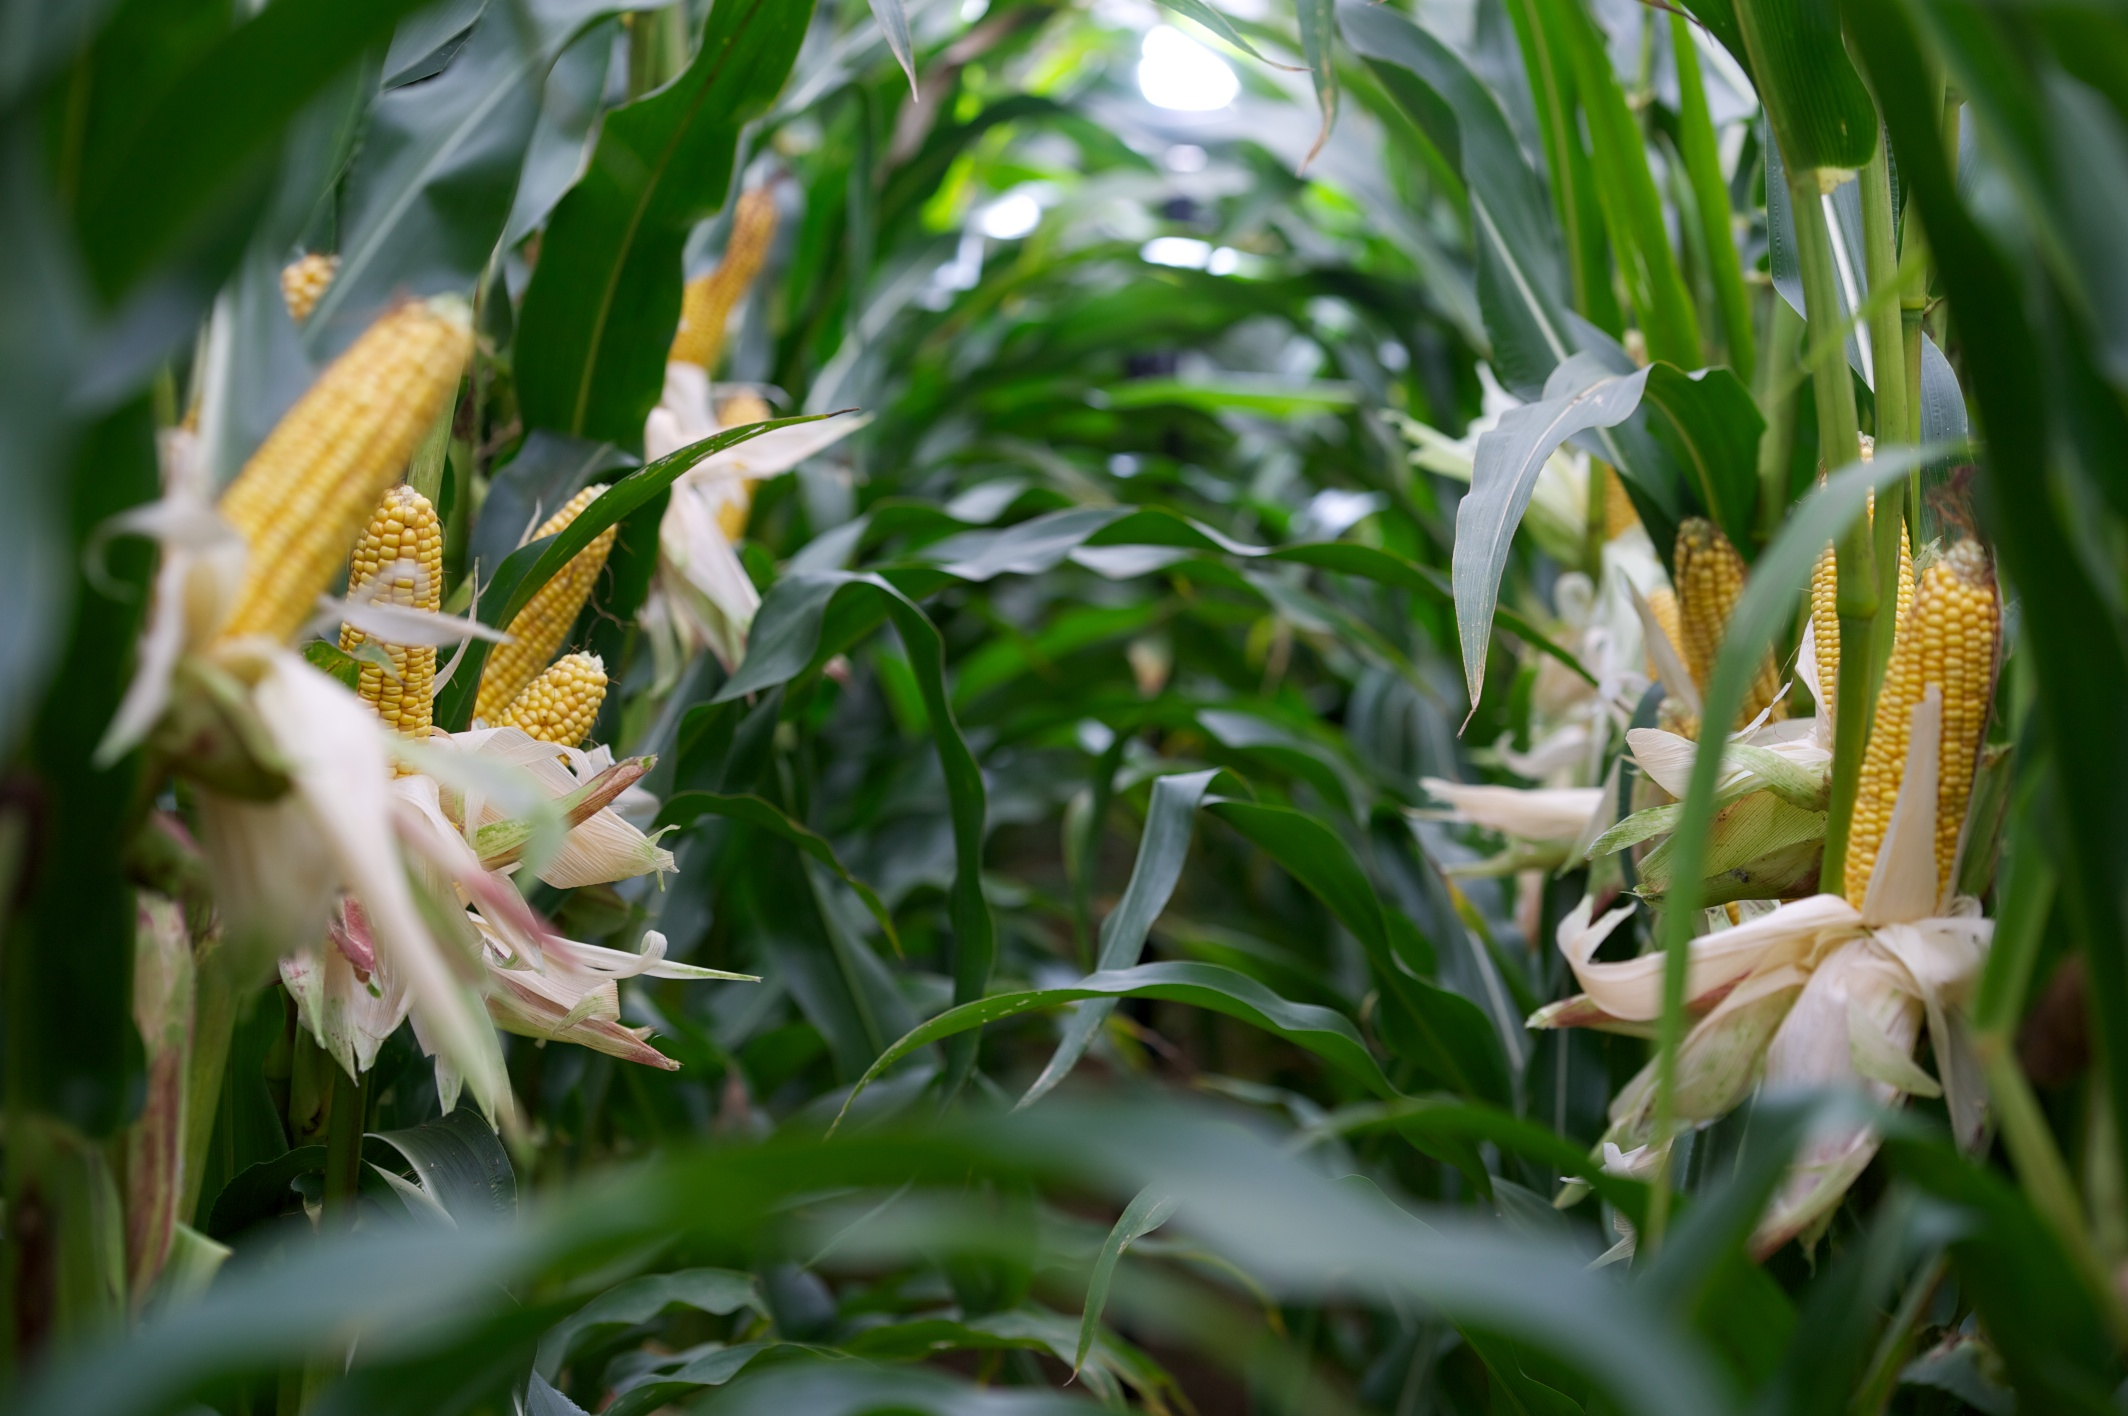 Maize varieties that deliver best feed quality will be in demand